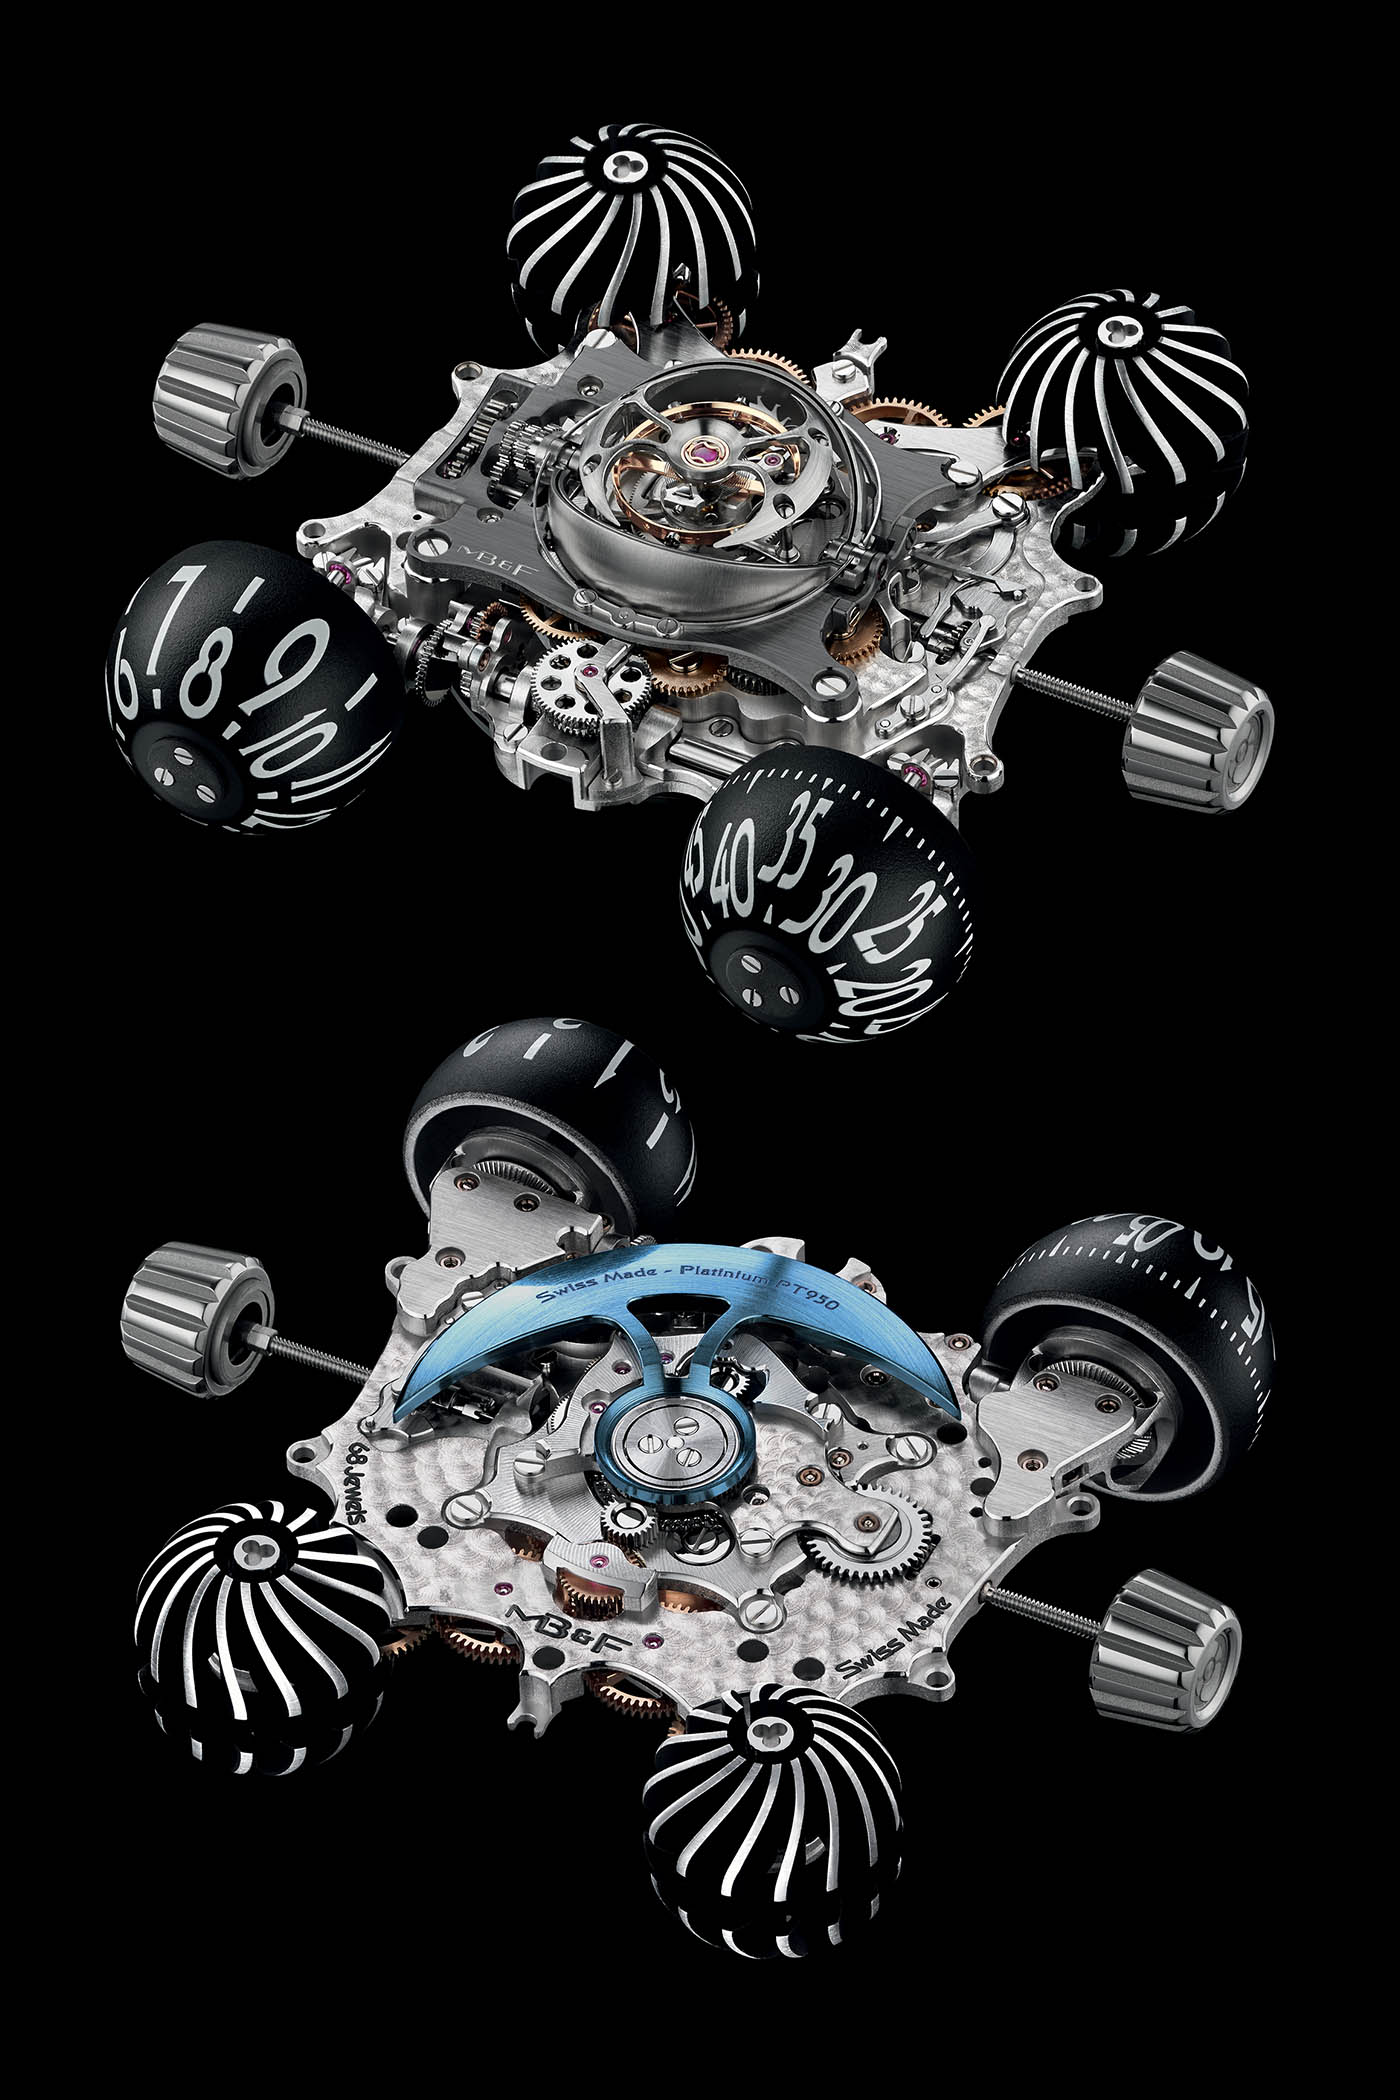 MB&F HM6 Final Edition Steel SIHH 2019